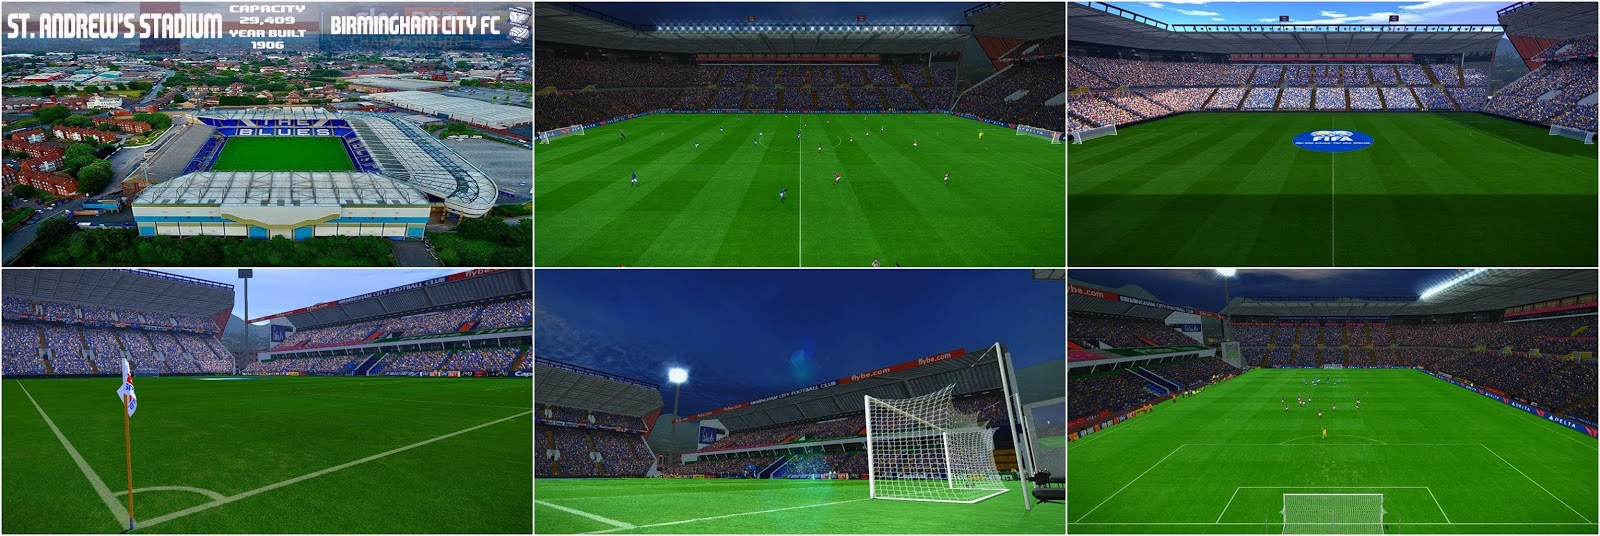 PES 2017 St. Andrew's Stadium by NaN RiddLe 08